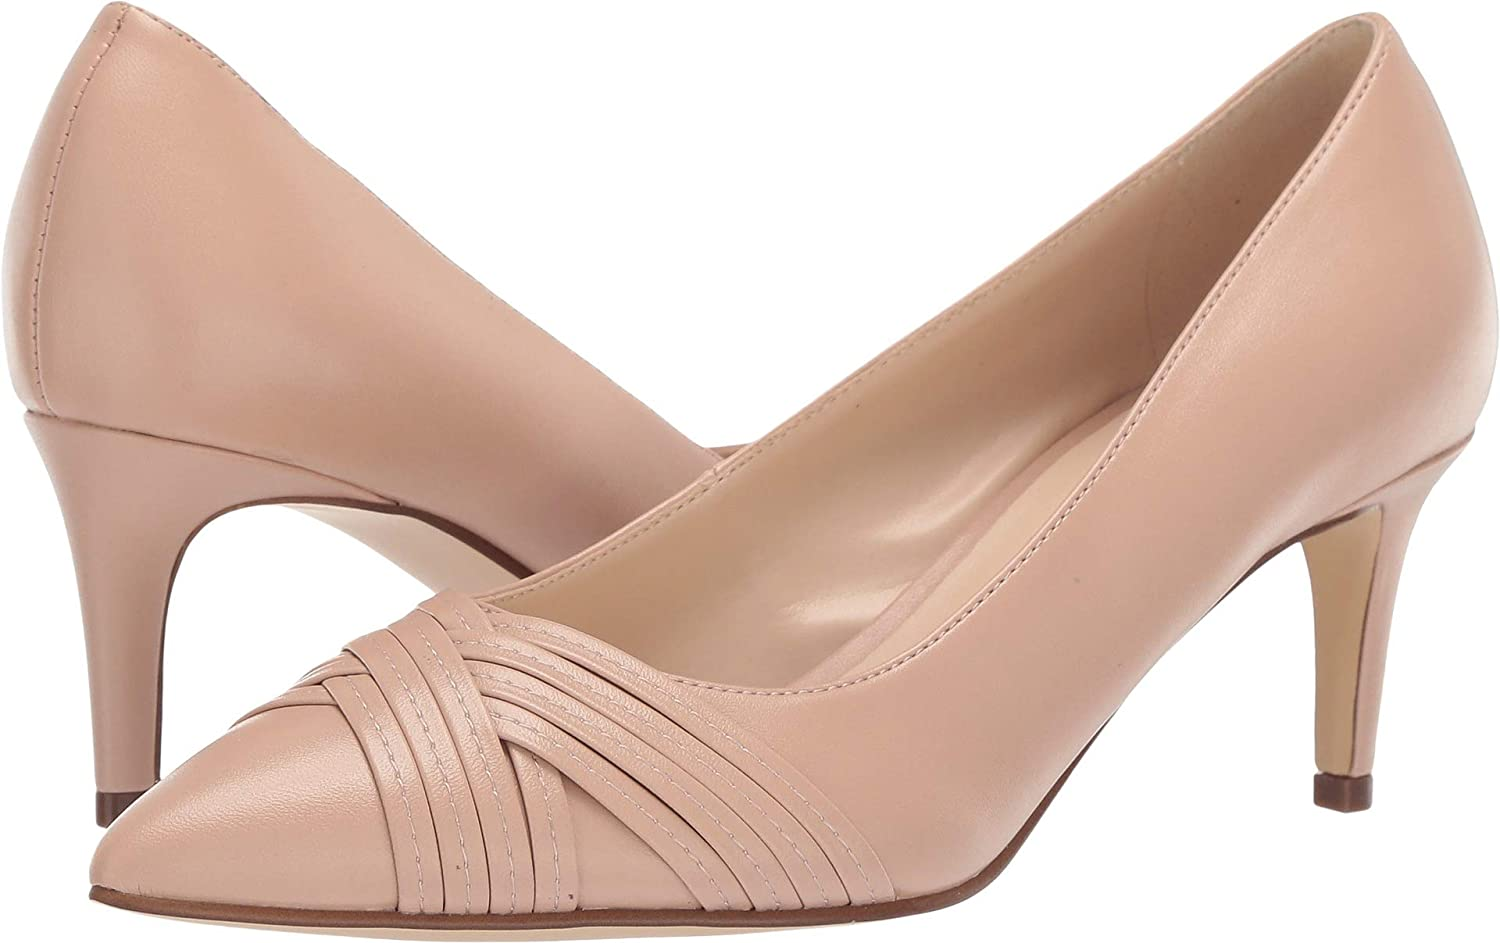 Barely Nude Nine West Womens Sofresh